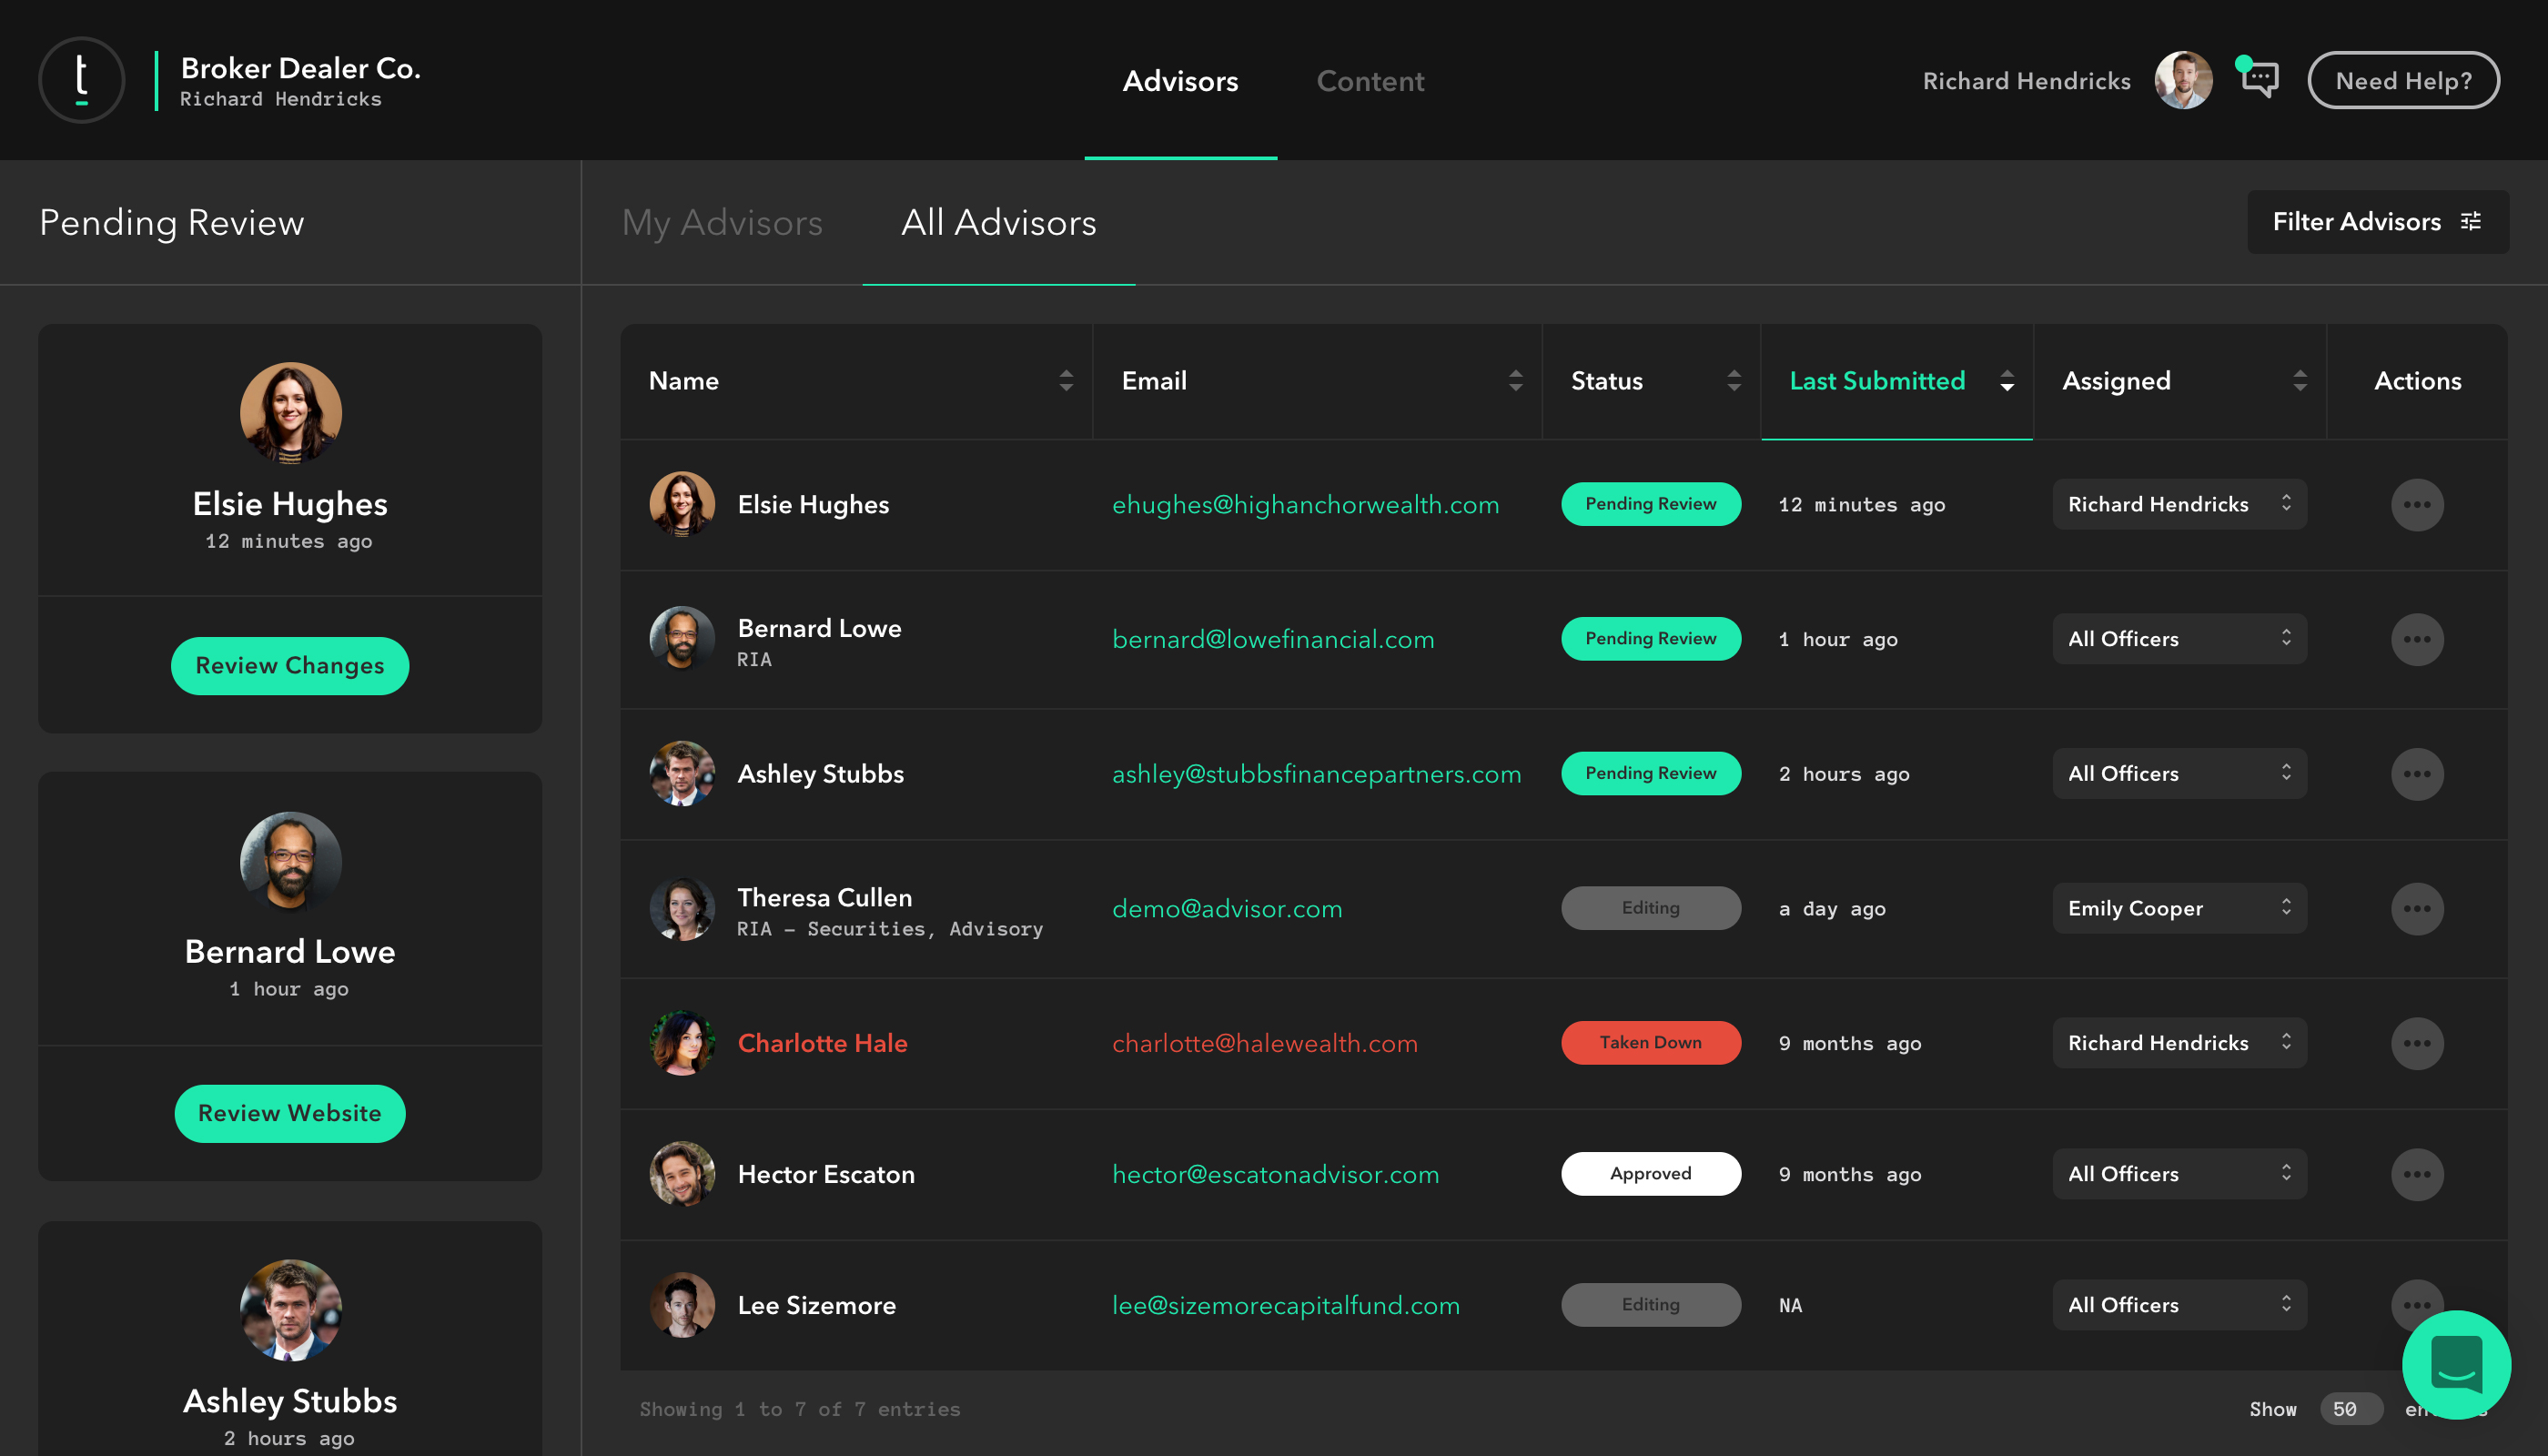 Providence Platform - Dashboard Screenshot